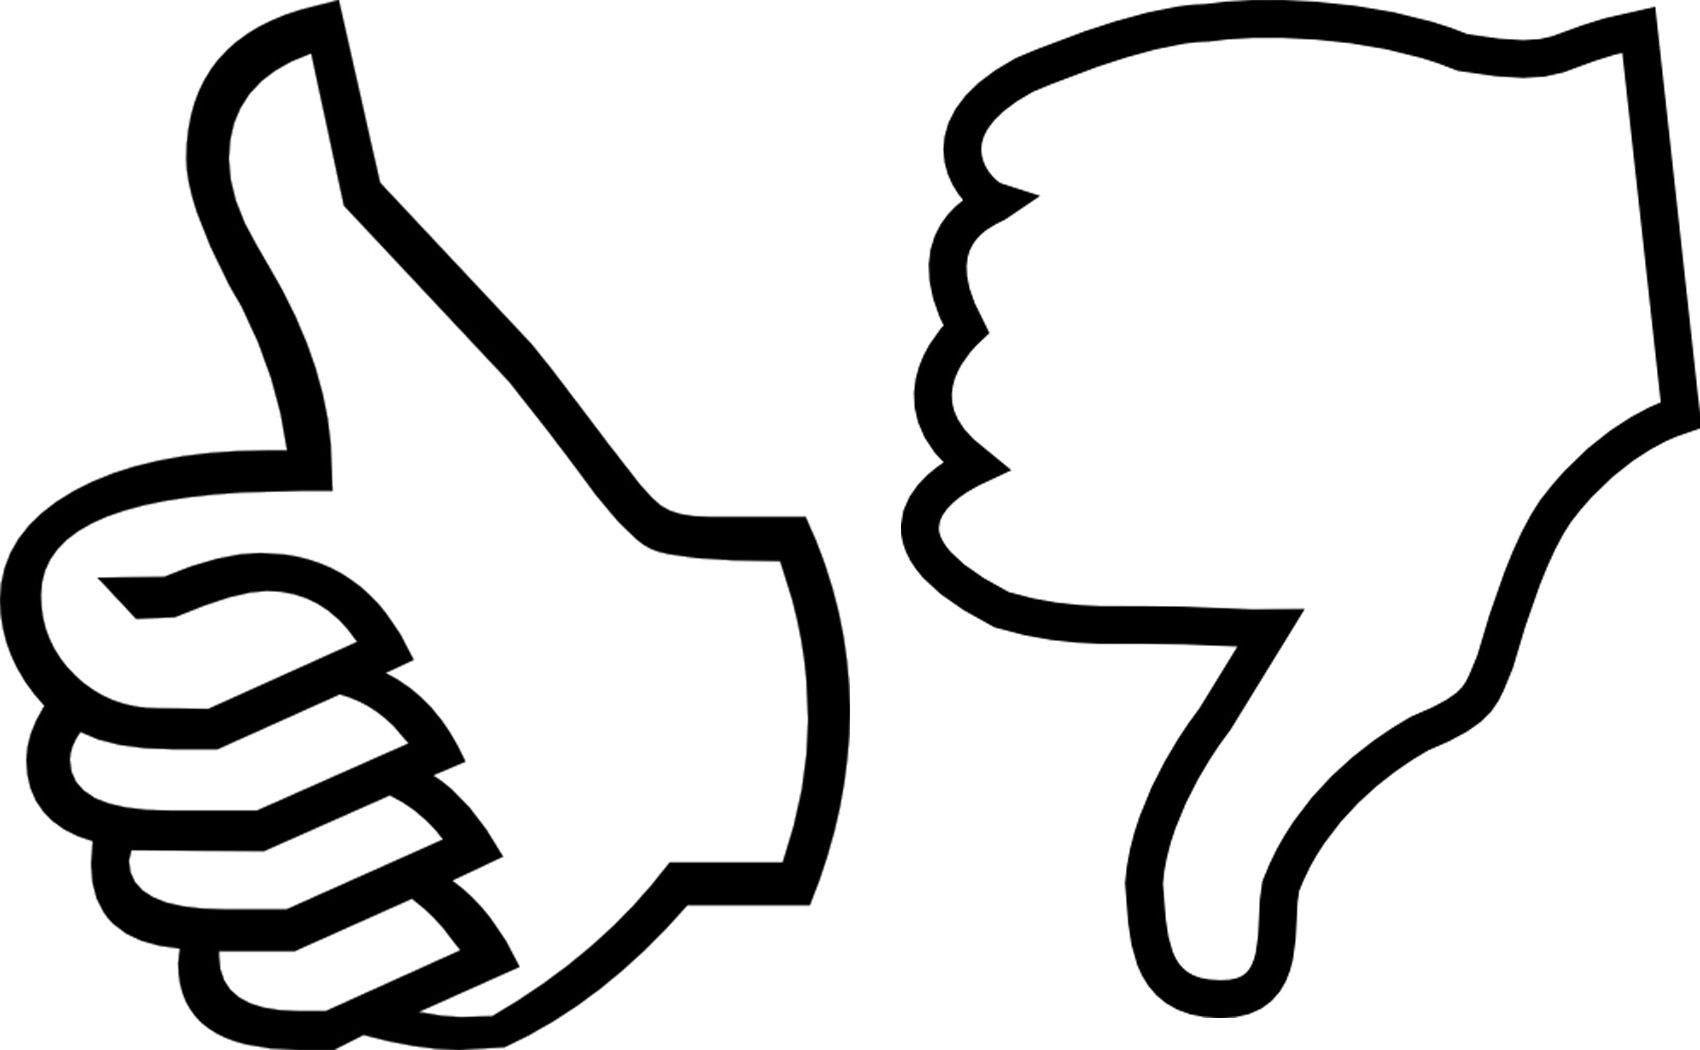 Black And White Thumbs Up Free Download Best Black And White